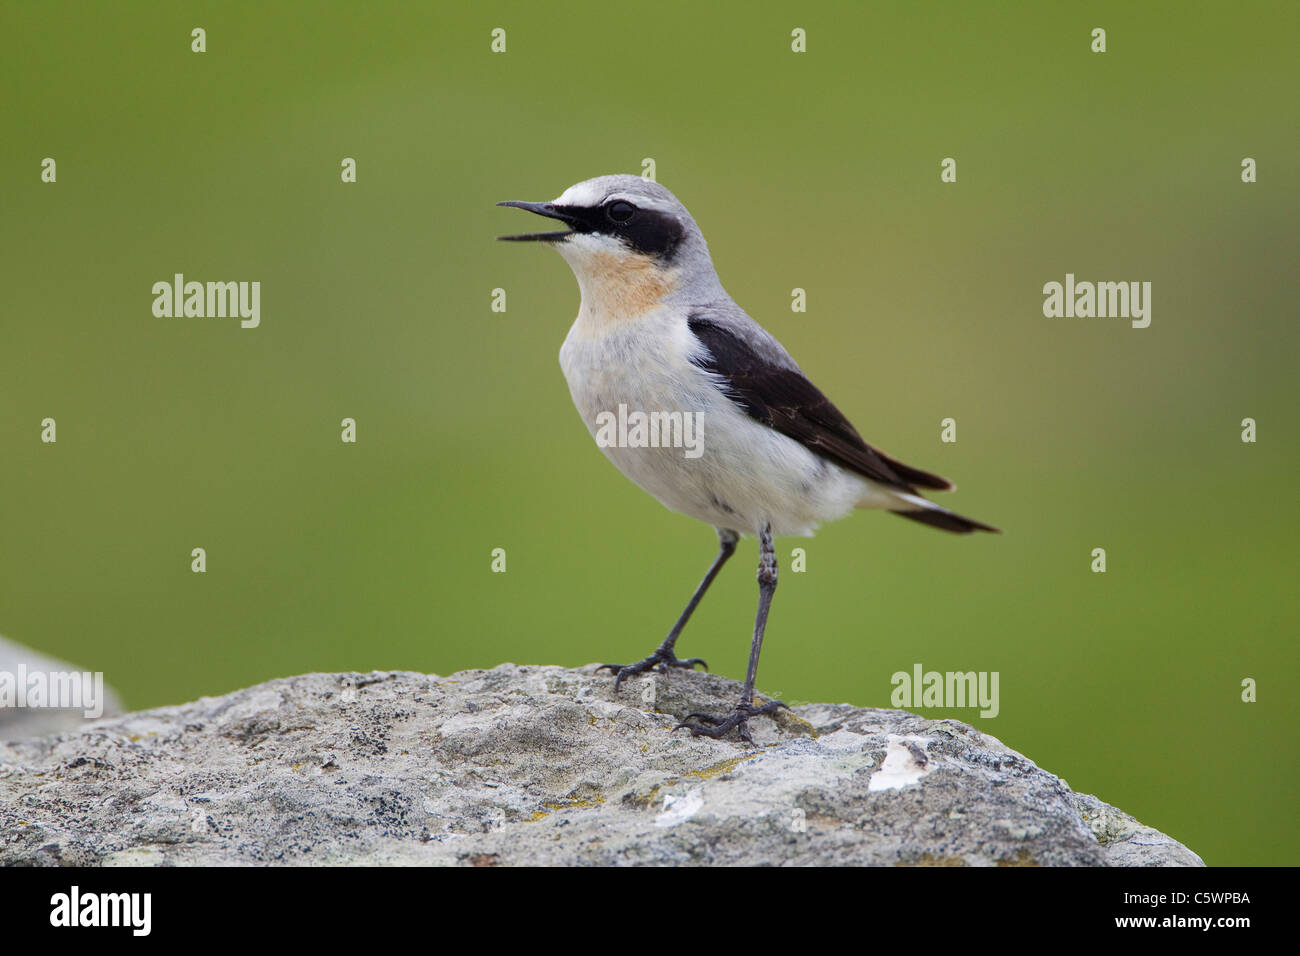 Northern Wheatear (Oenanthe oenanthe). Adult male perched on rock while calling, Shetland, Scotland, Great Britain. - Stock Image